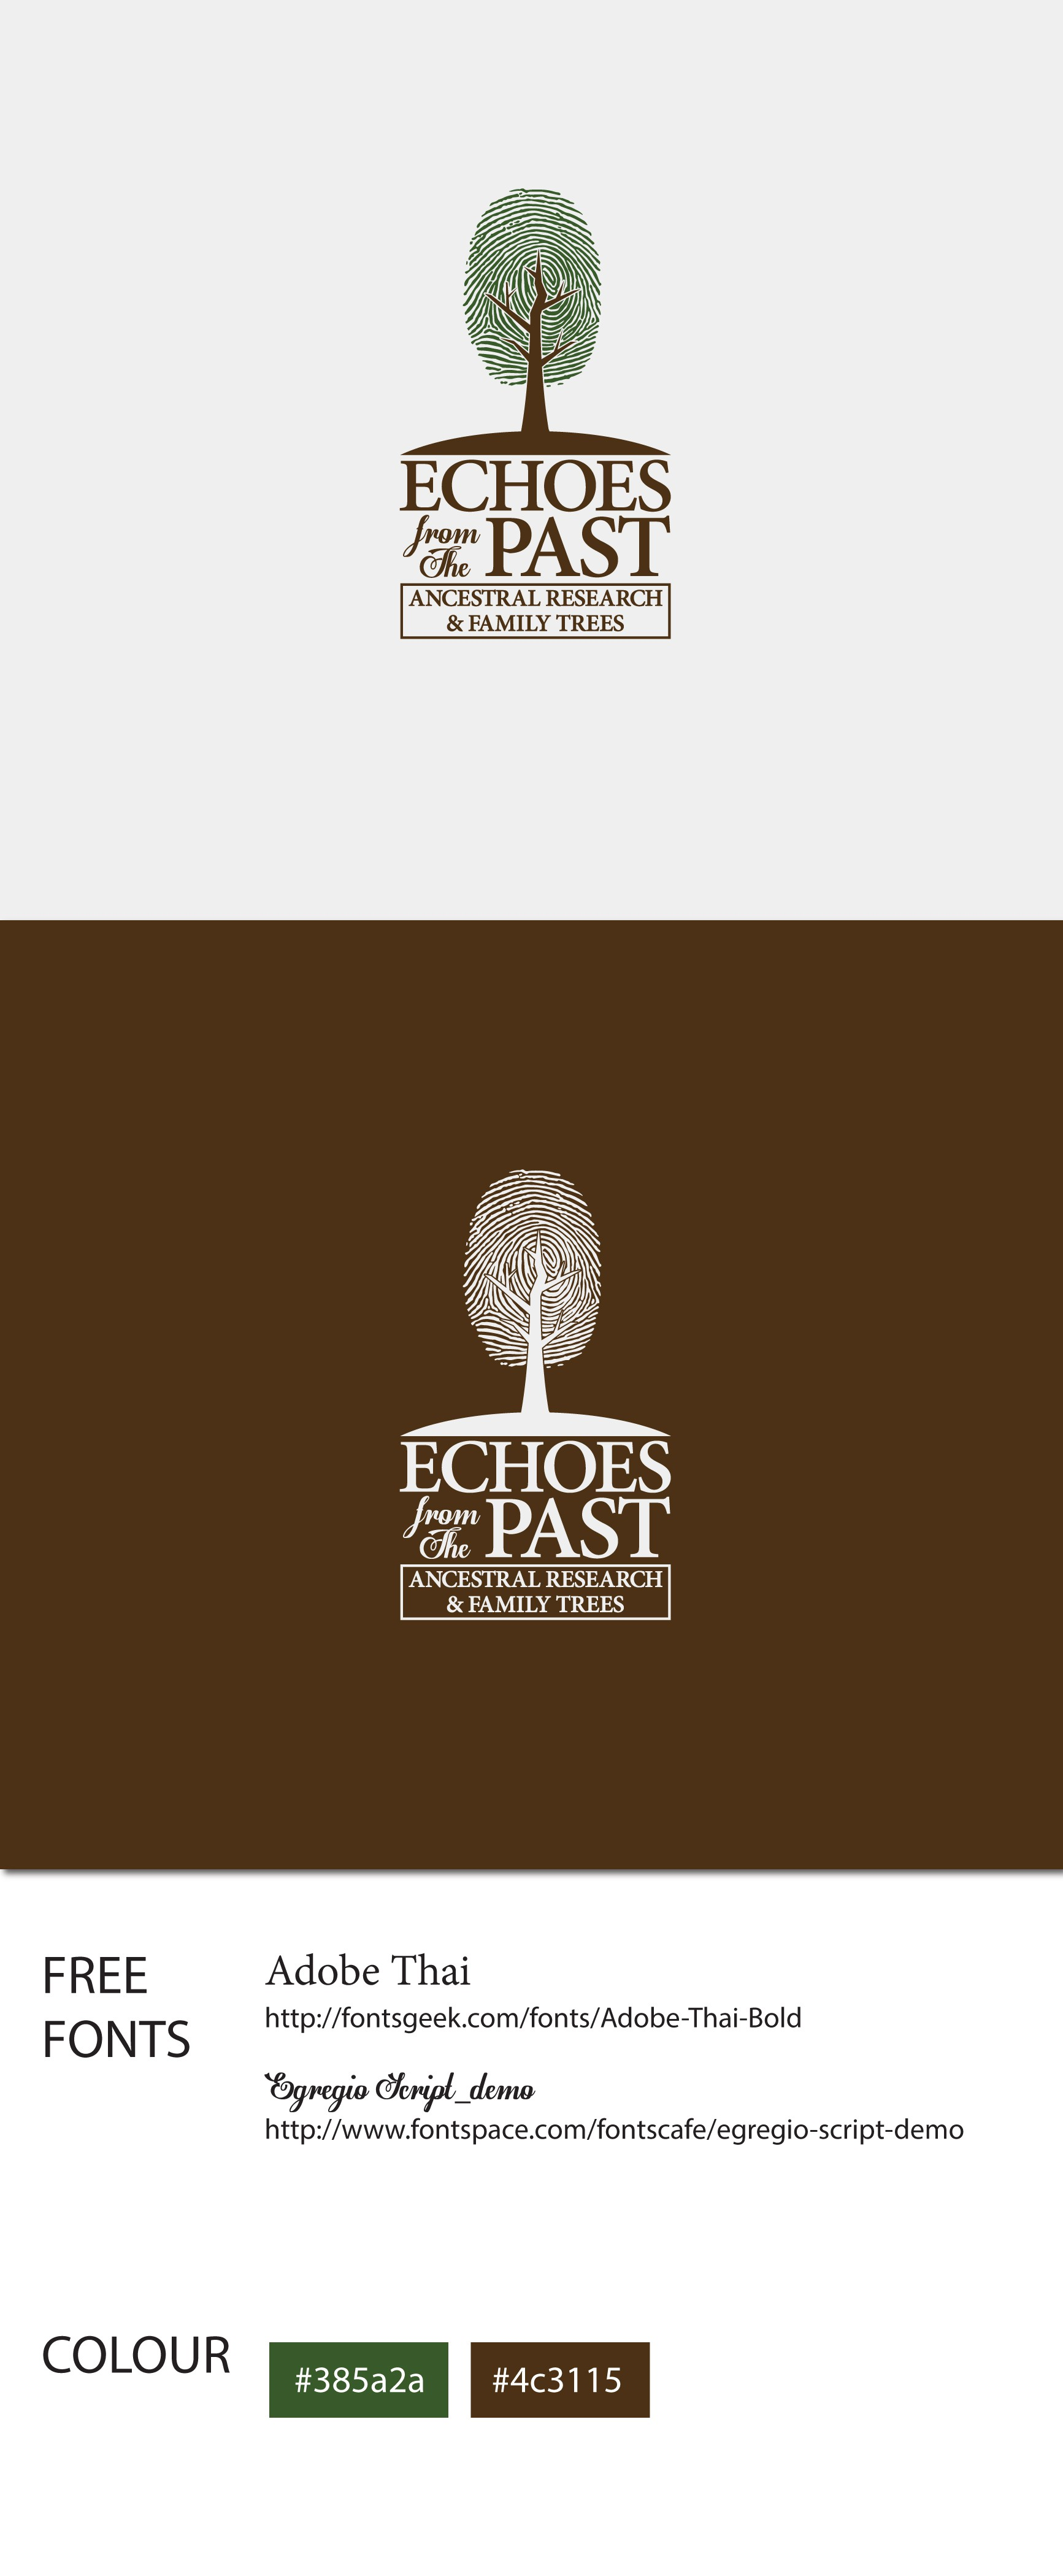 Echos from the past - Create a FAB' logo to catapult us back to the past!